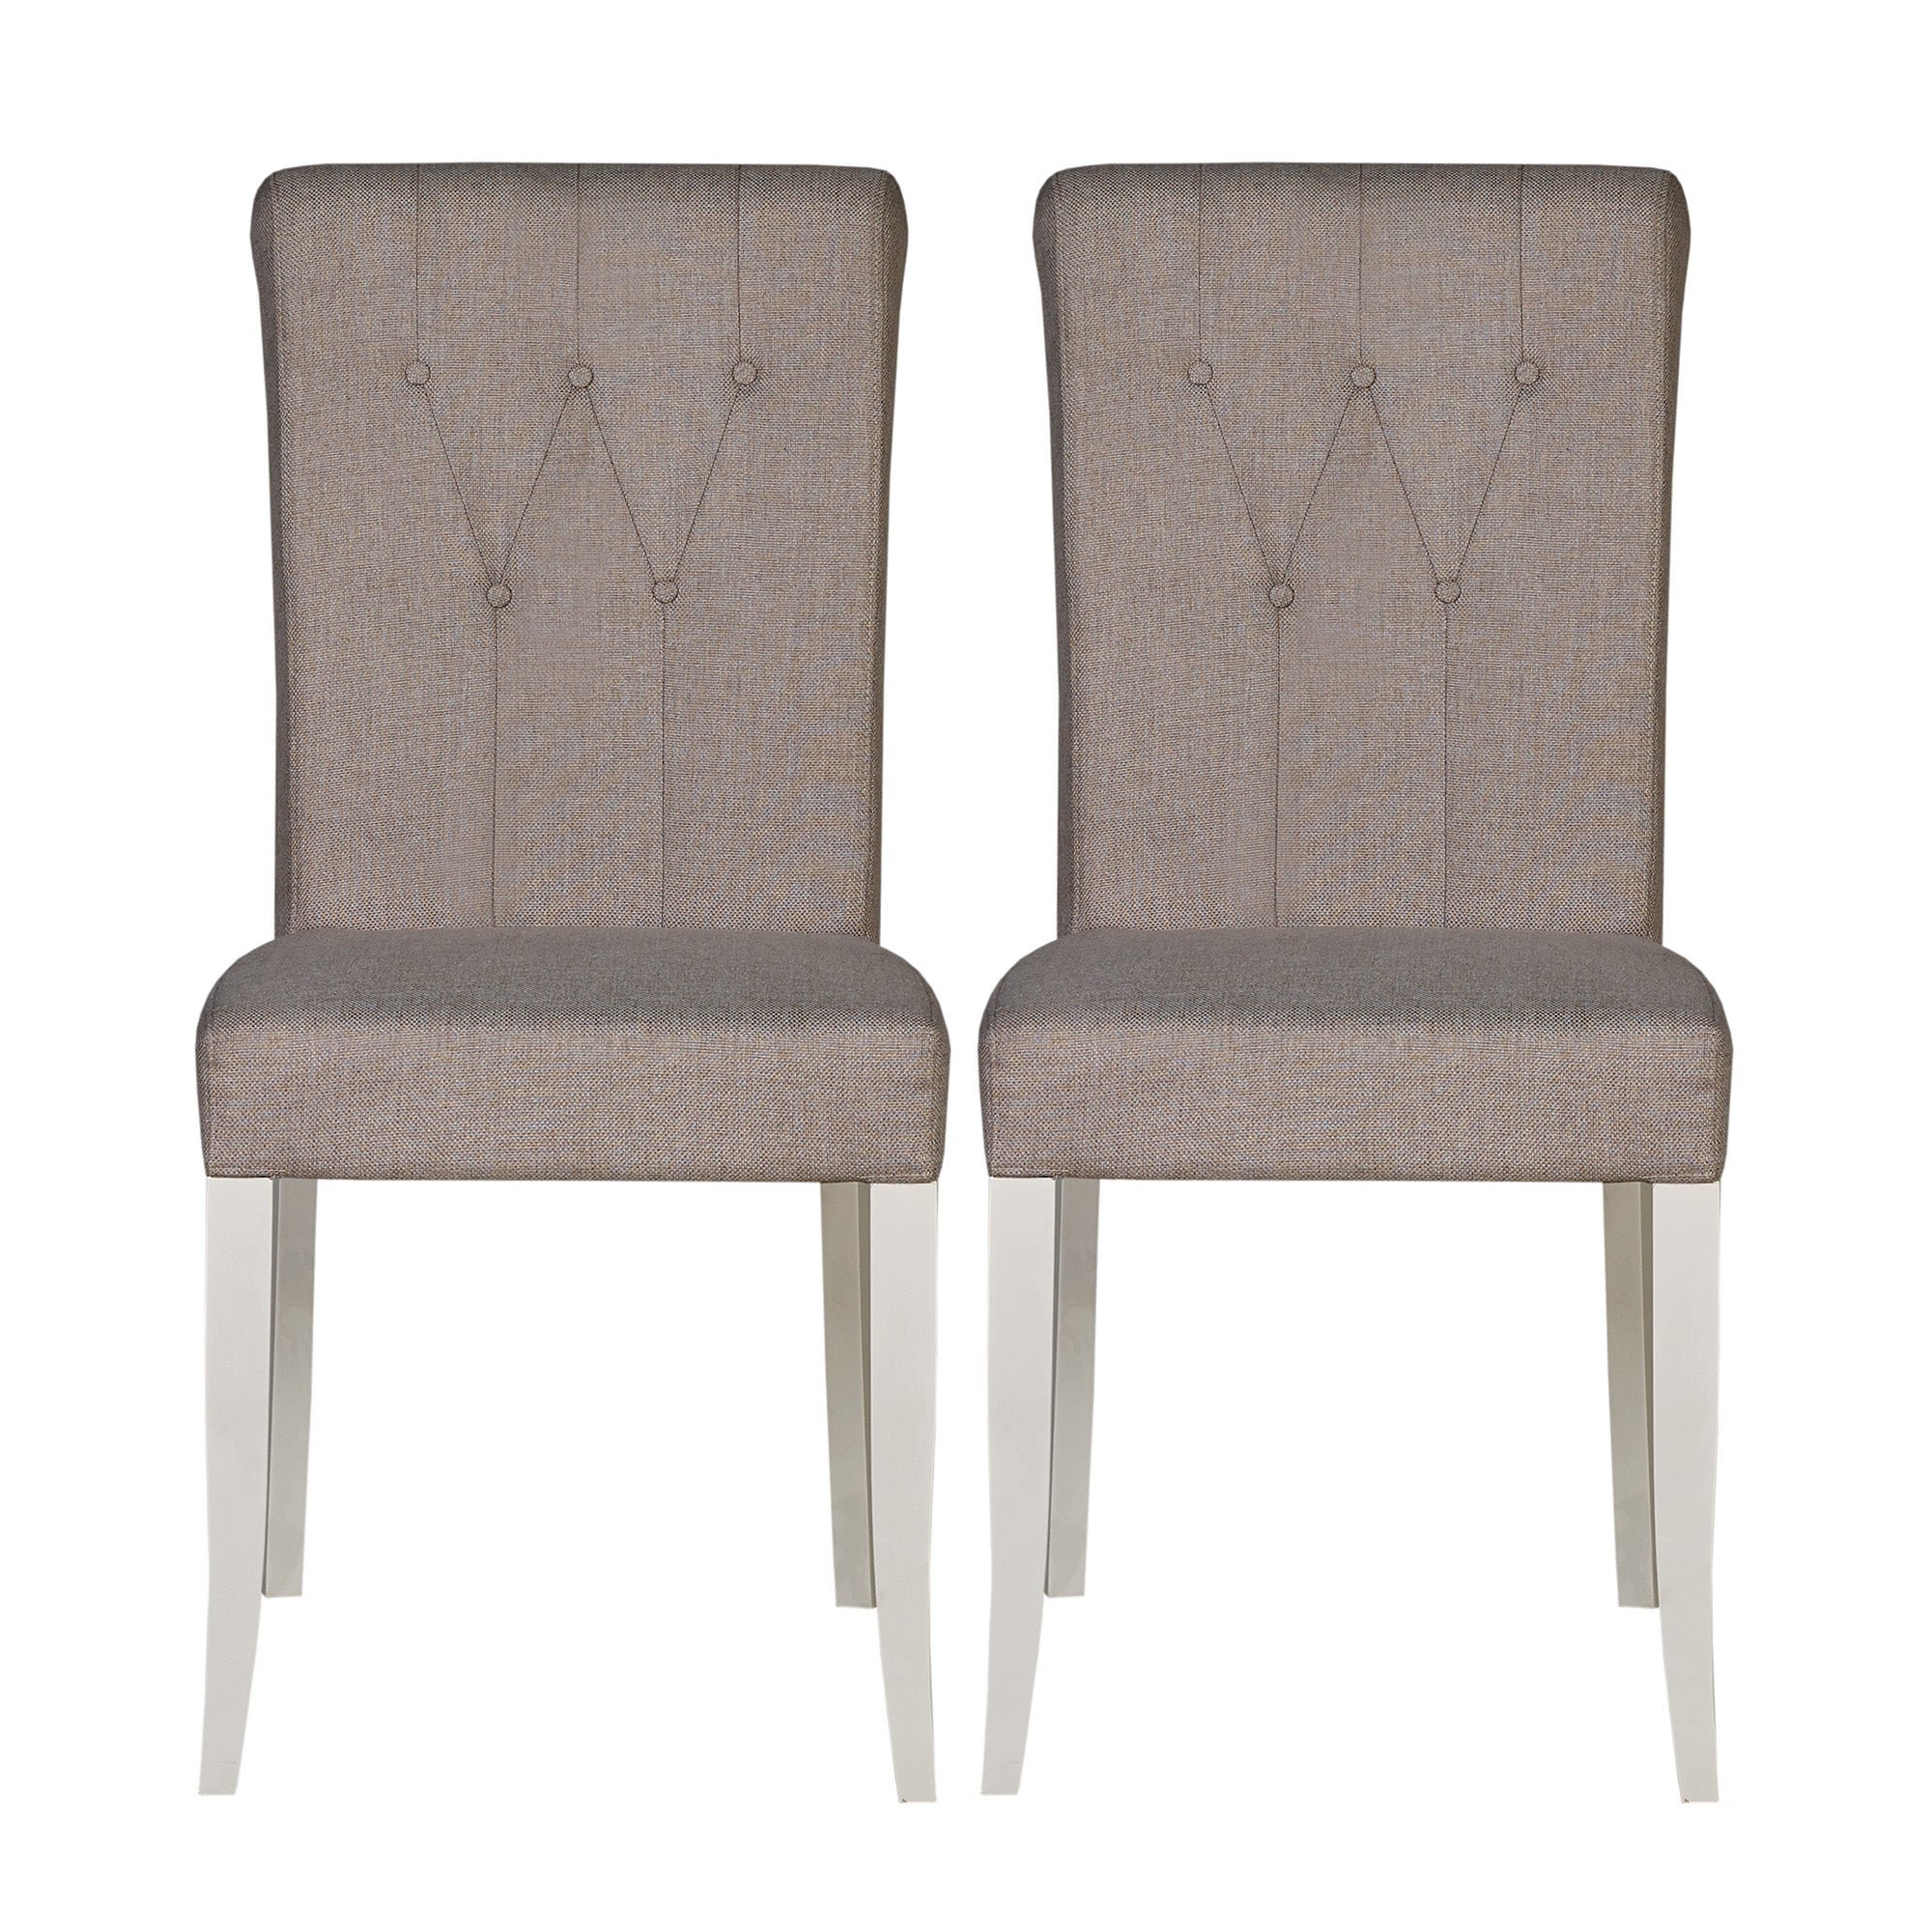 Photo of Eaton soft grey button back pair of upholstered dining chairs light grey